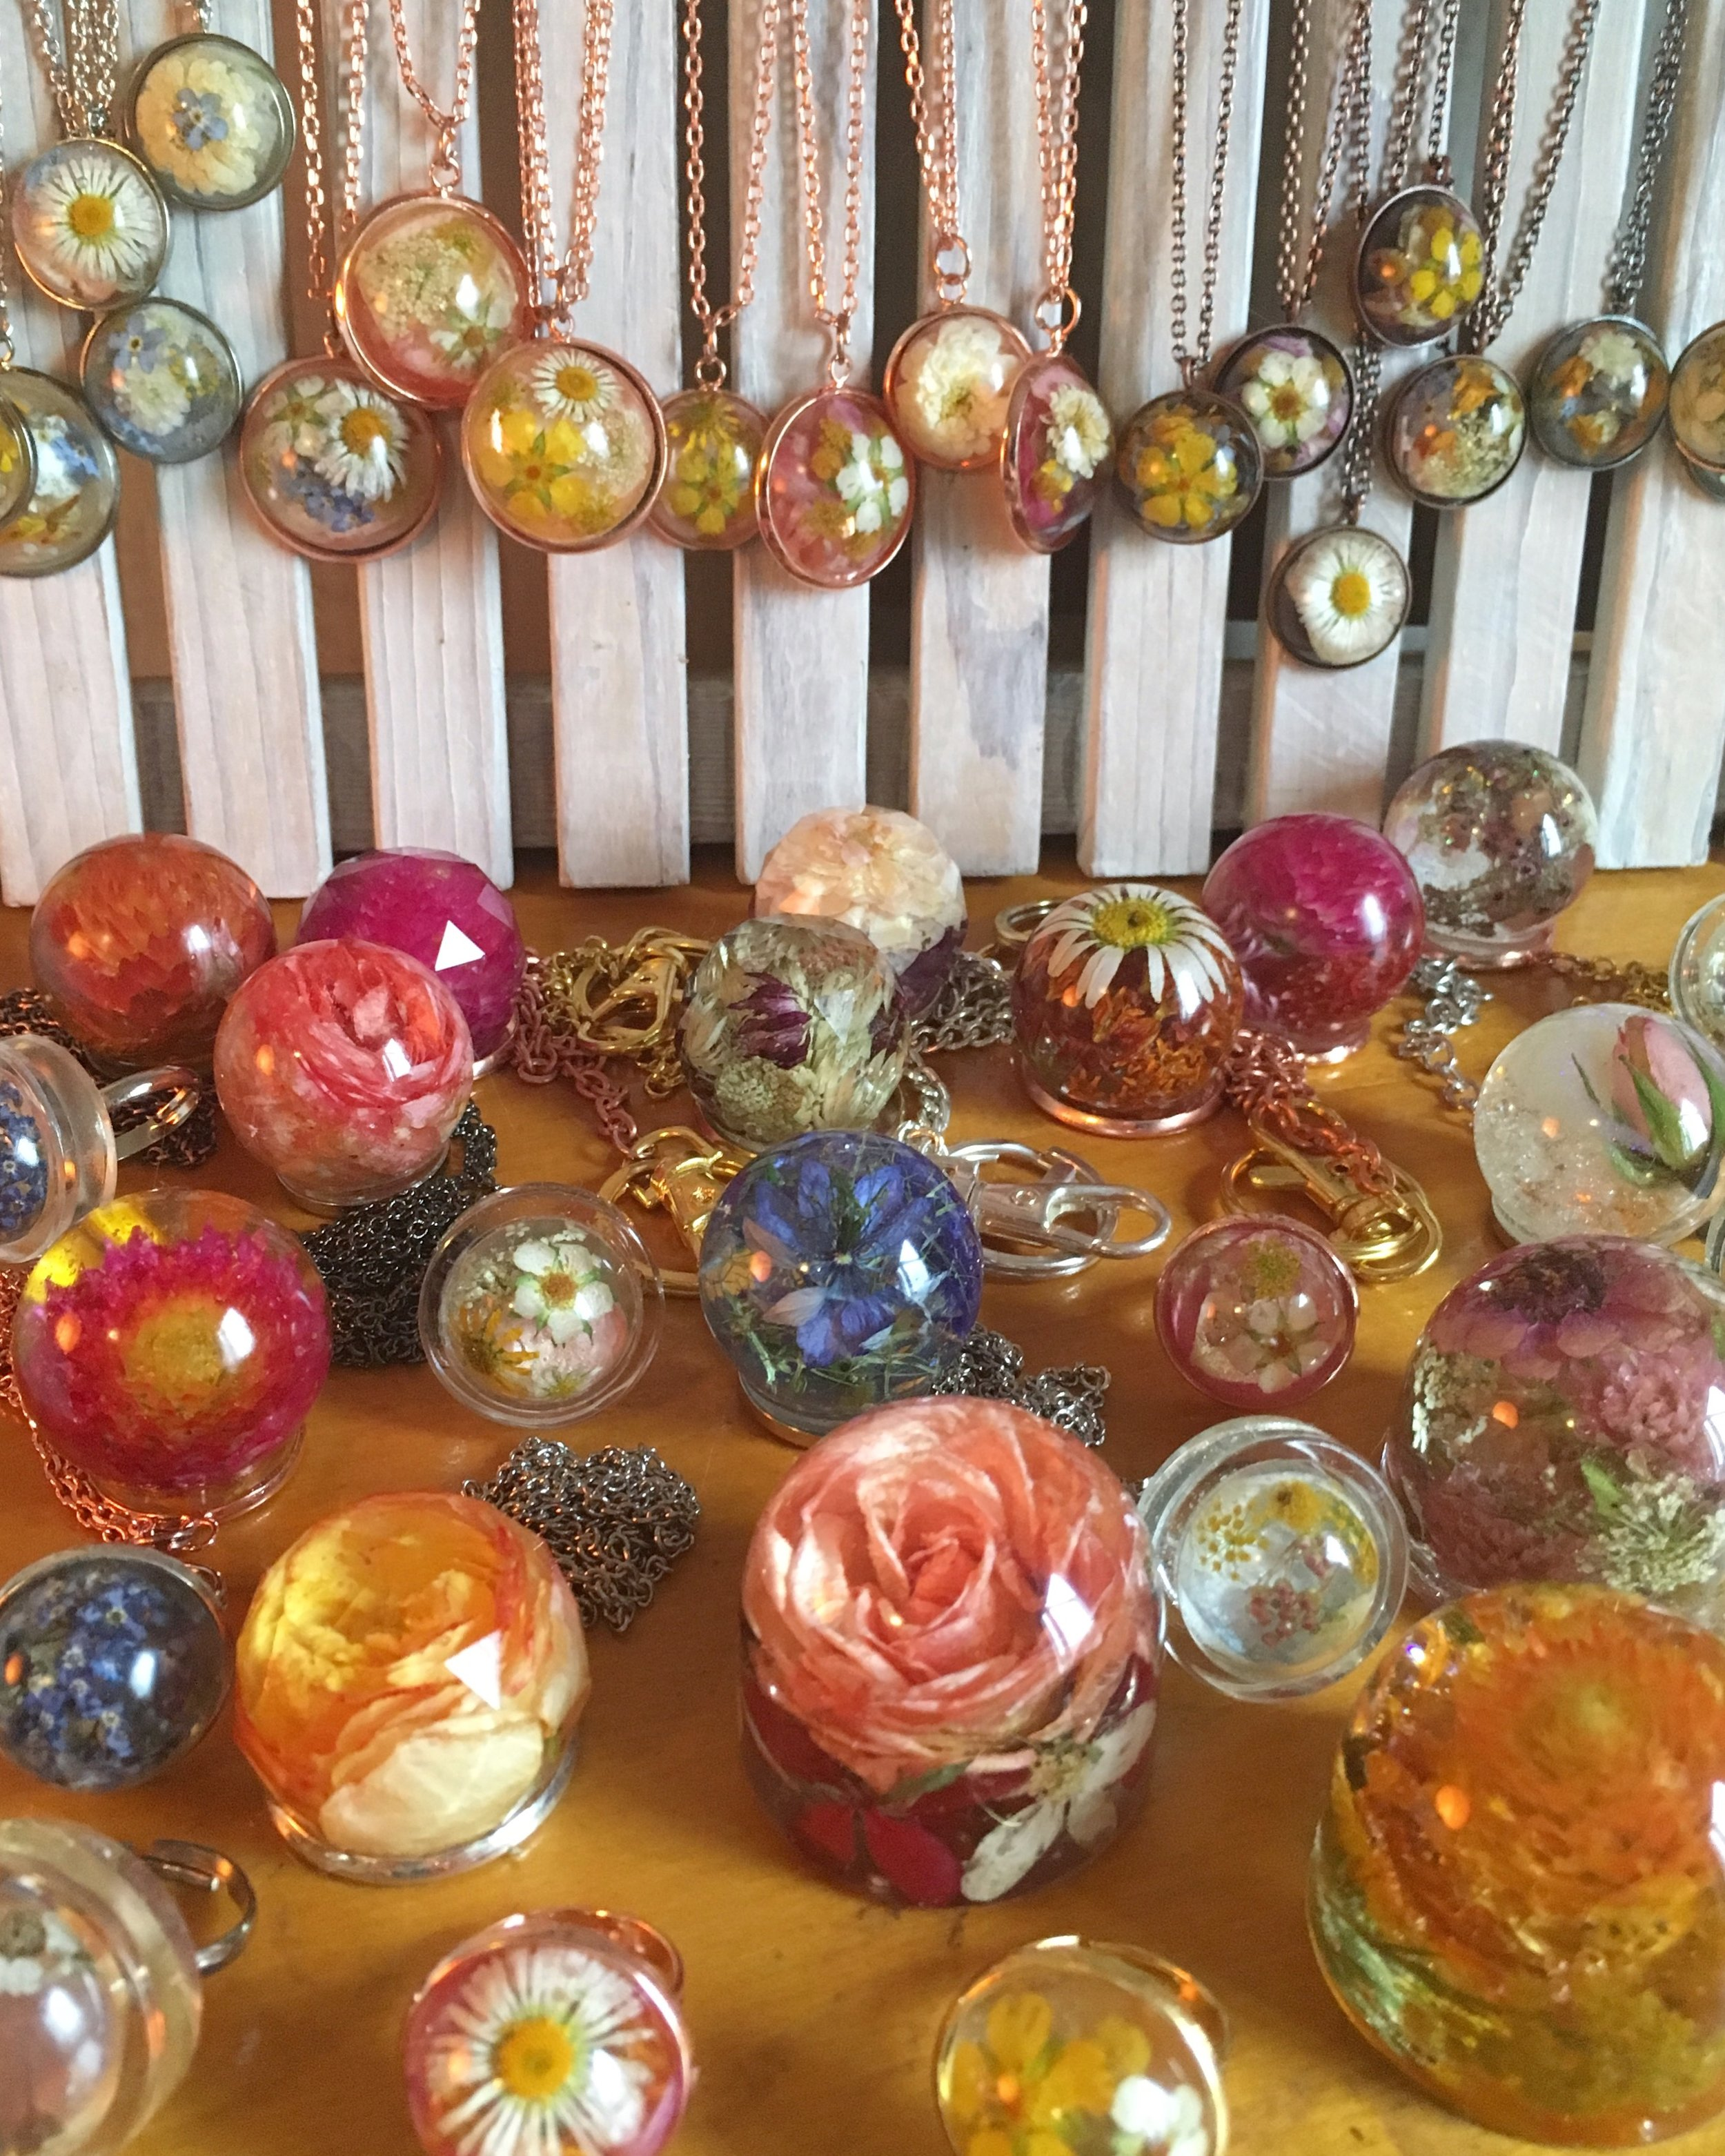 pendants, rings, keychains & small dome paperweights